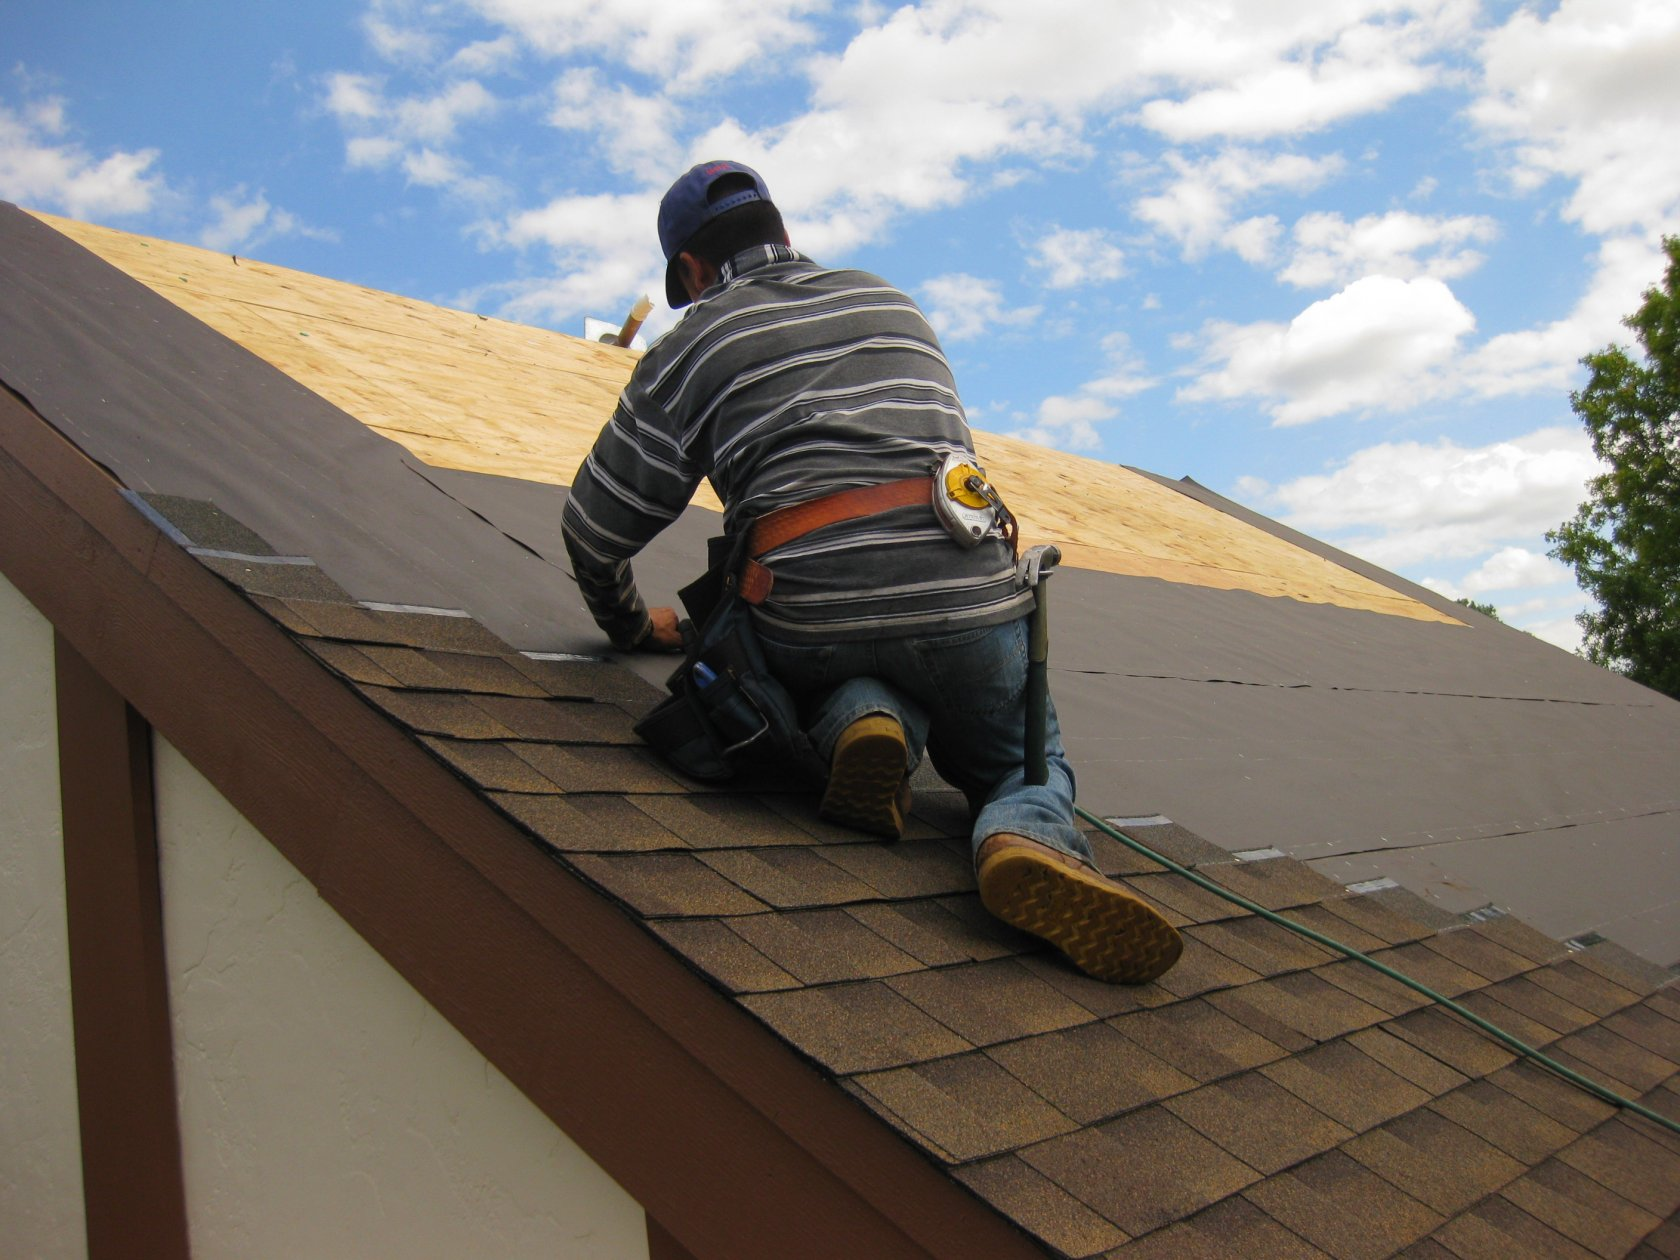 Few Things To Know Before Hiring A Roofer